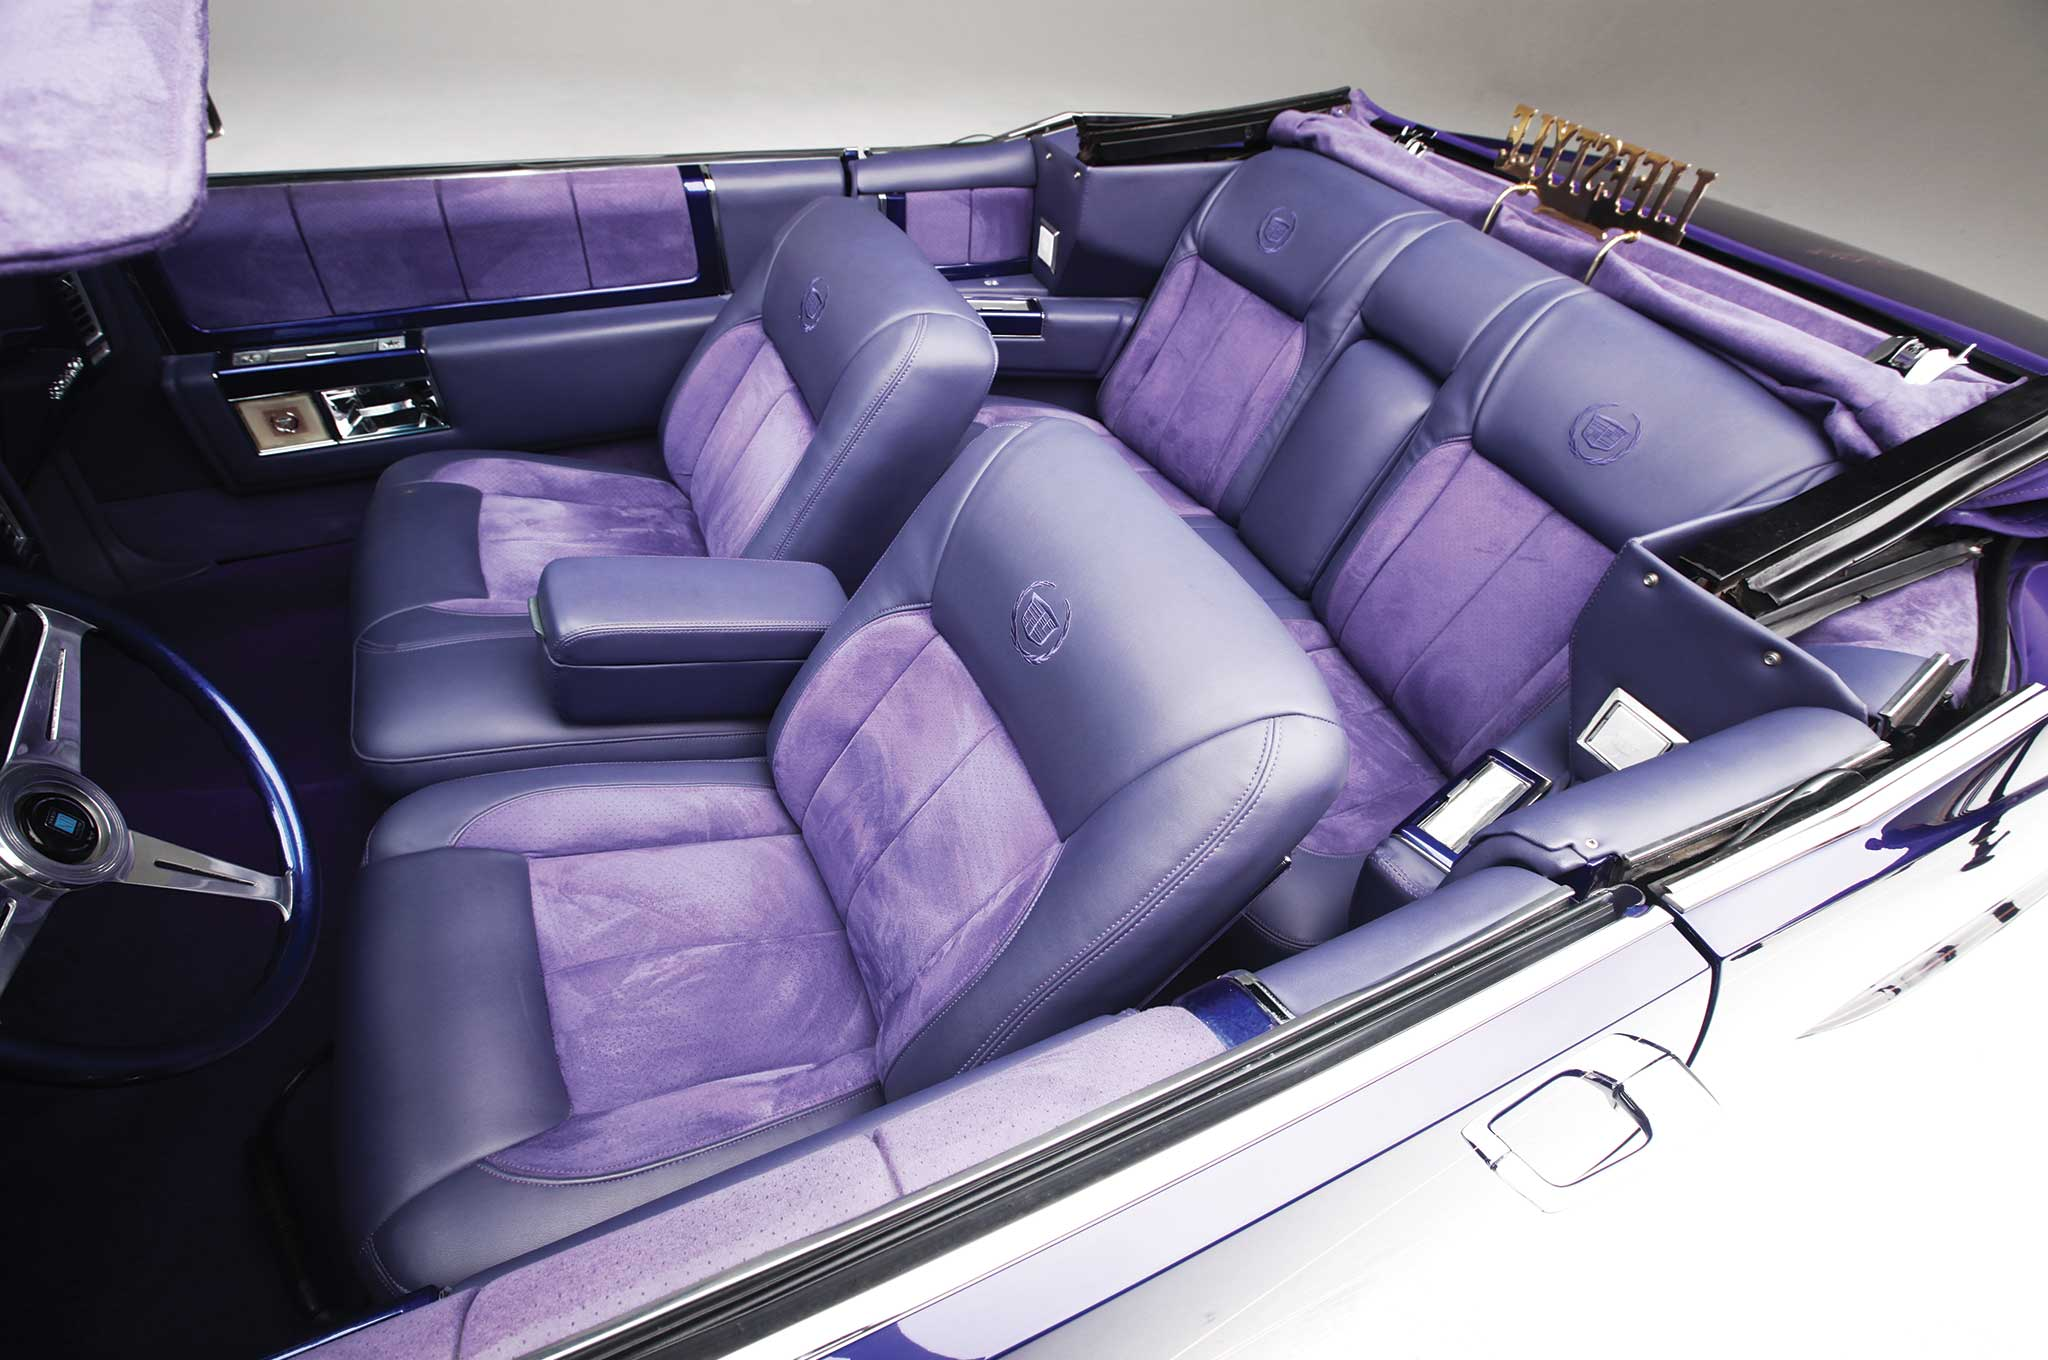 1979-cadillac-le-cabriolet-suede-and-leather-interior-by-california-upholstery